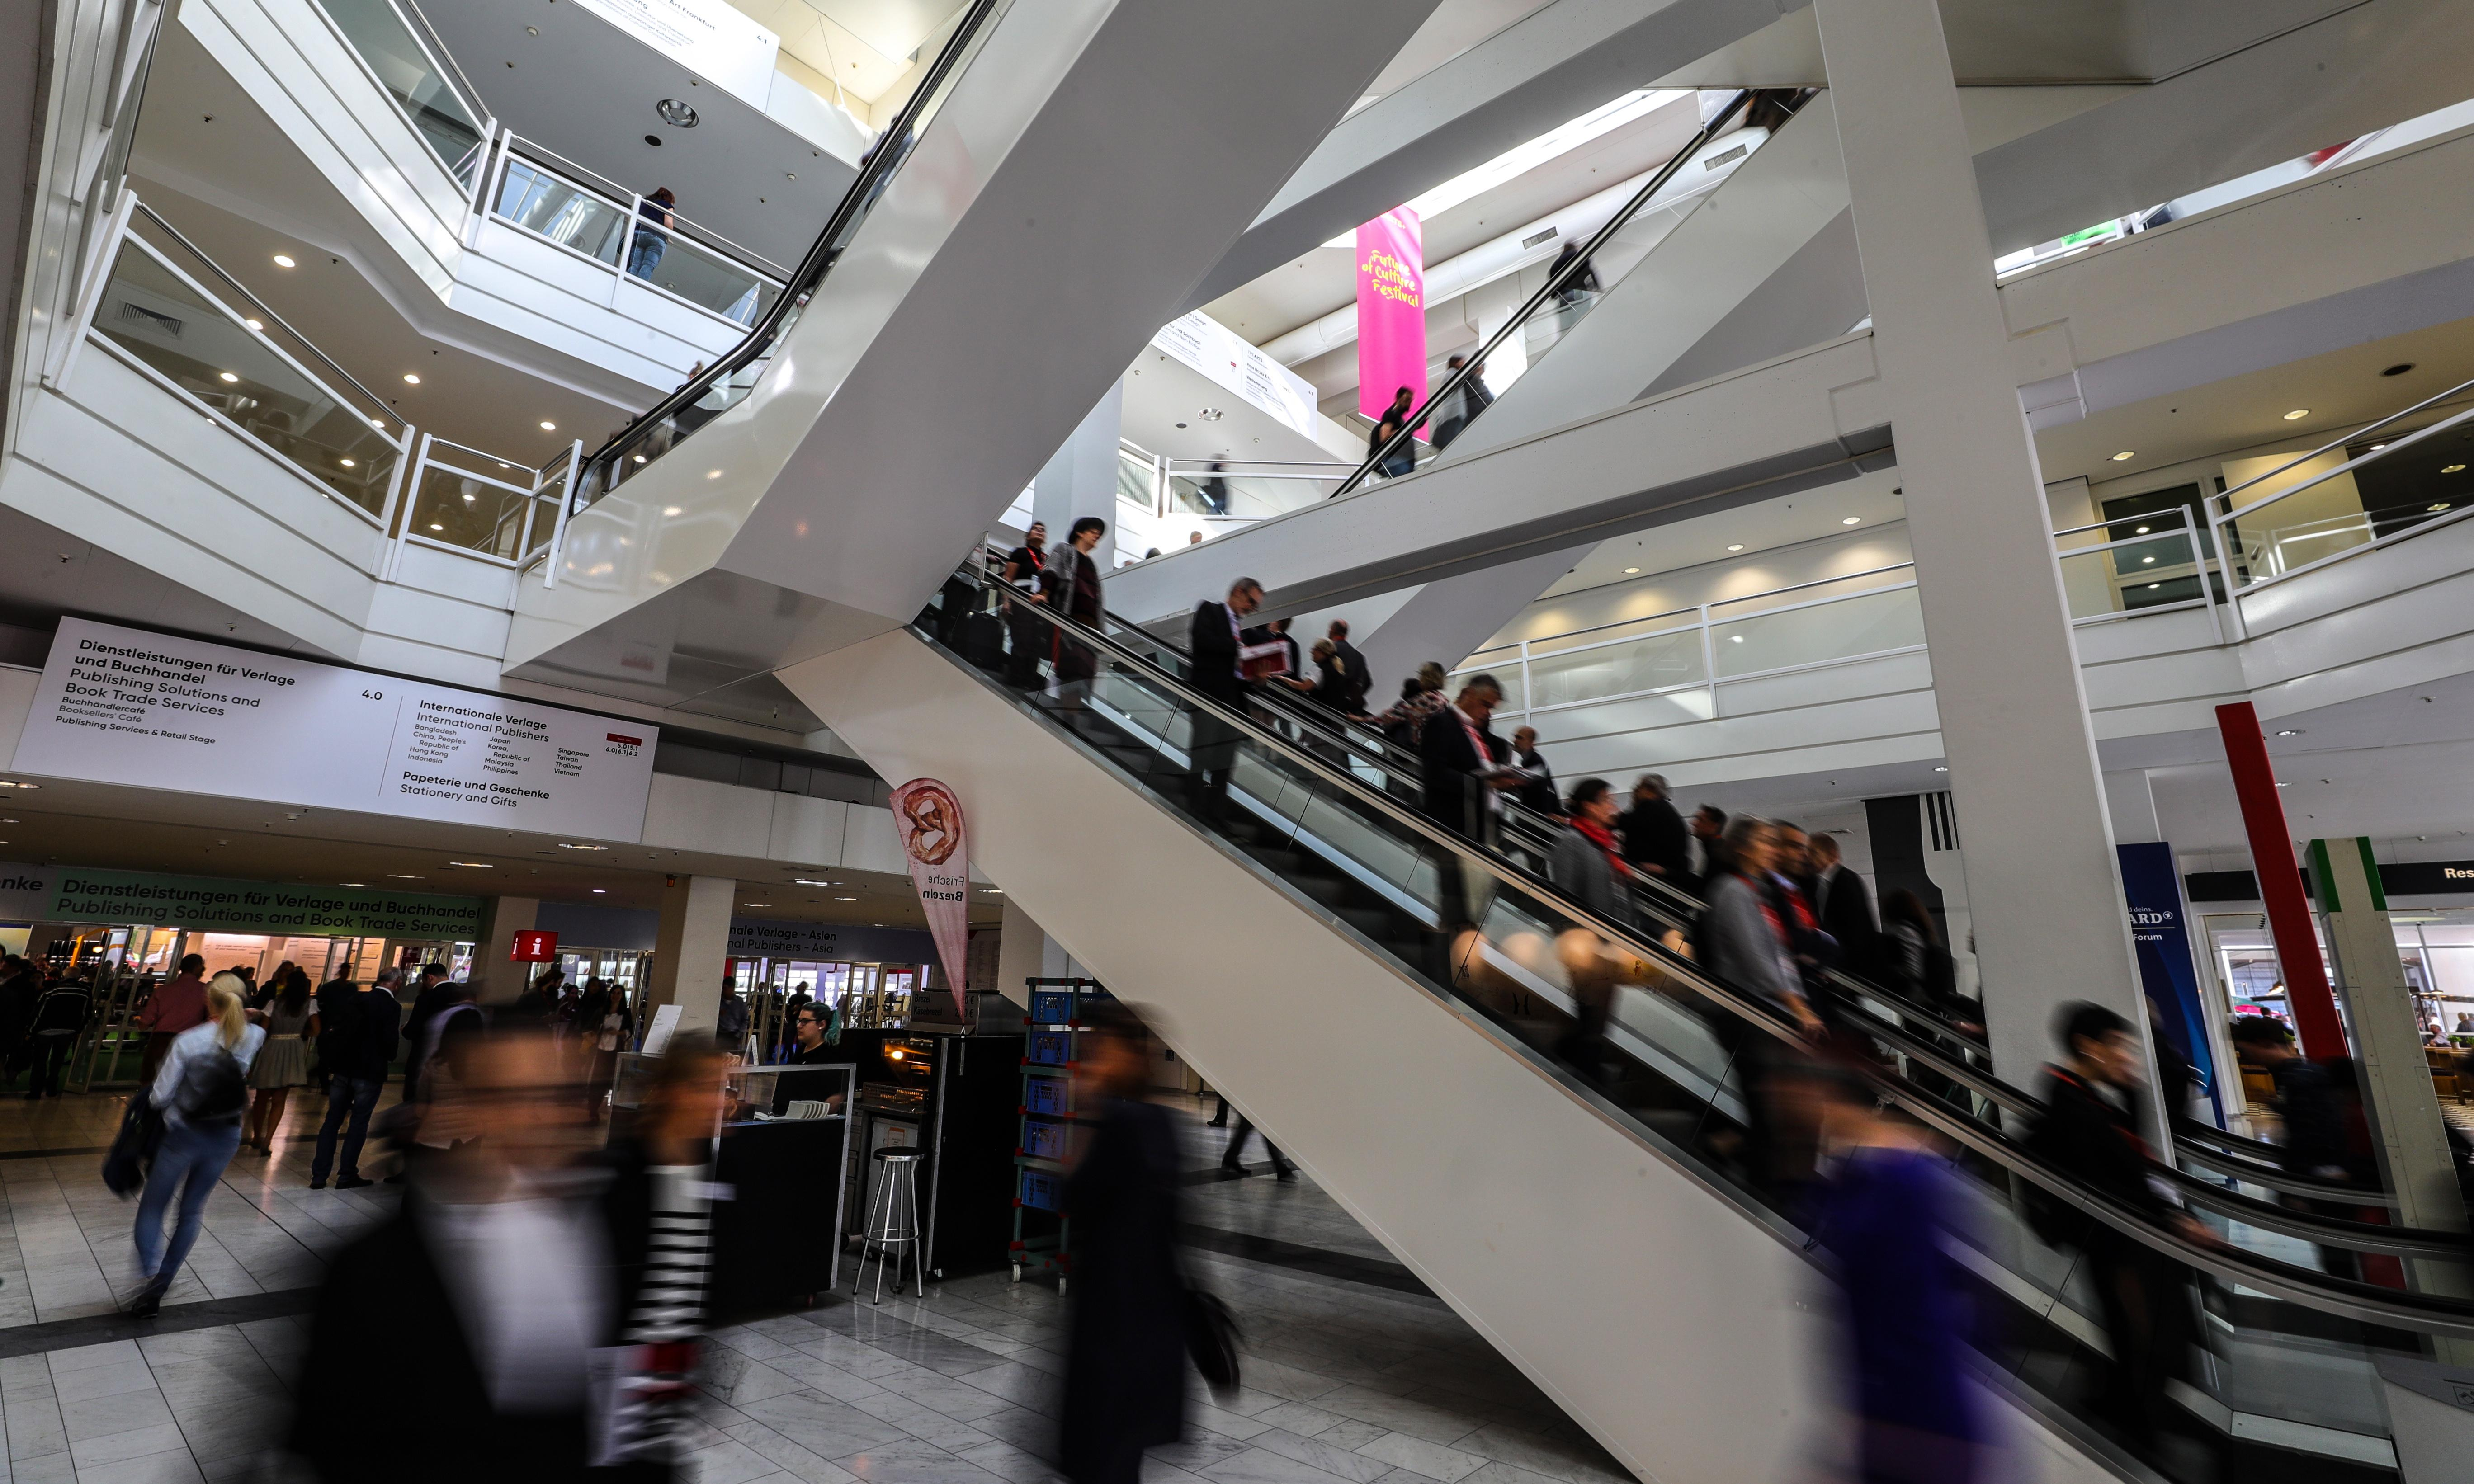 'Up-lit' gives hope to publishers at Frankfurt book fair